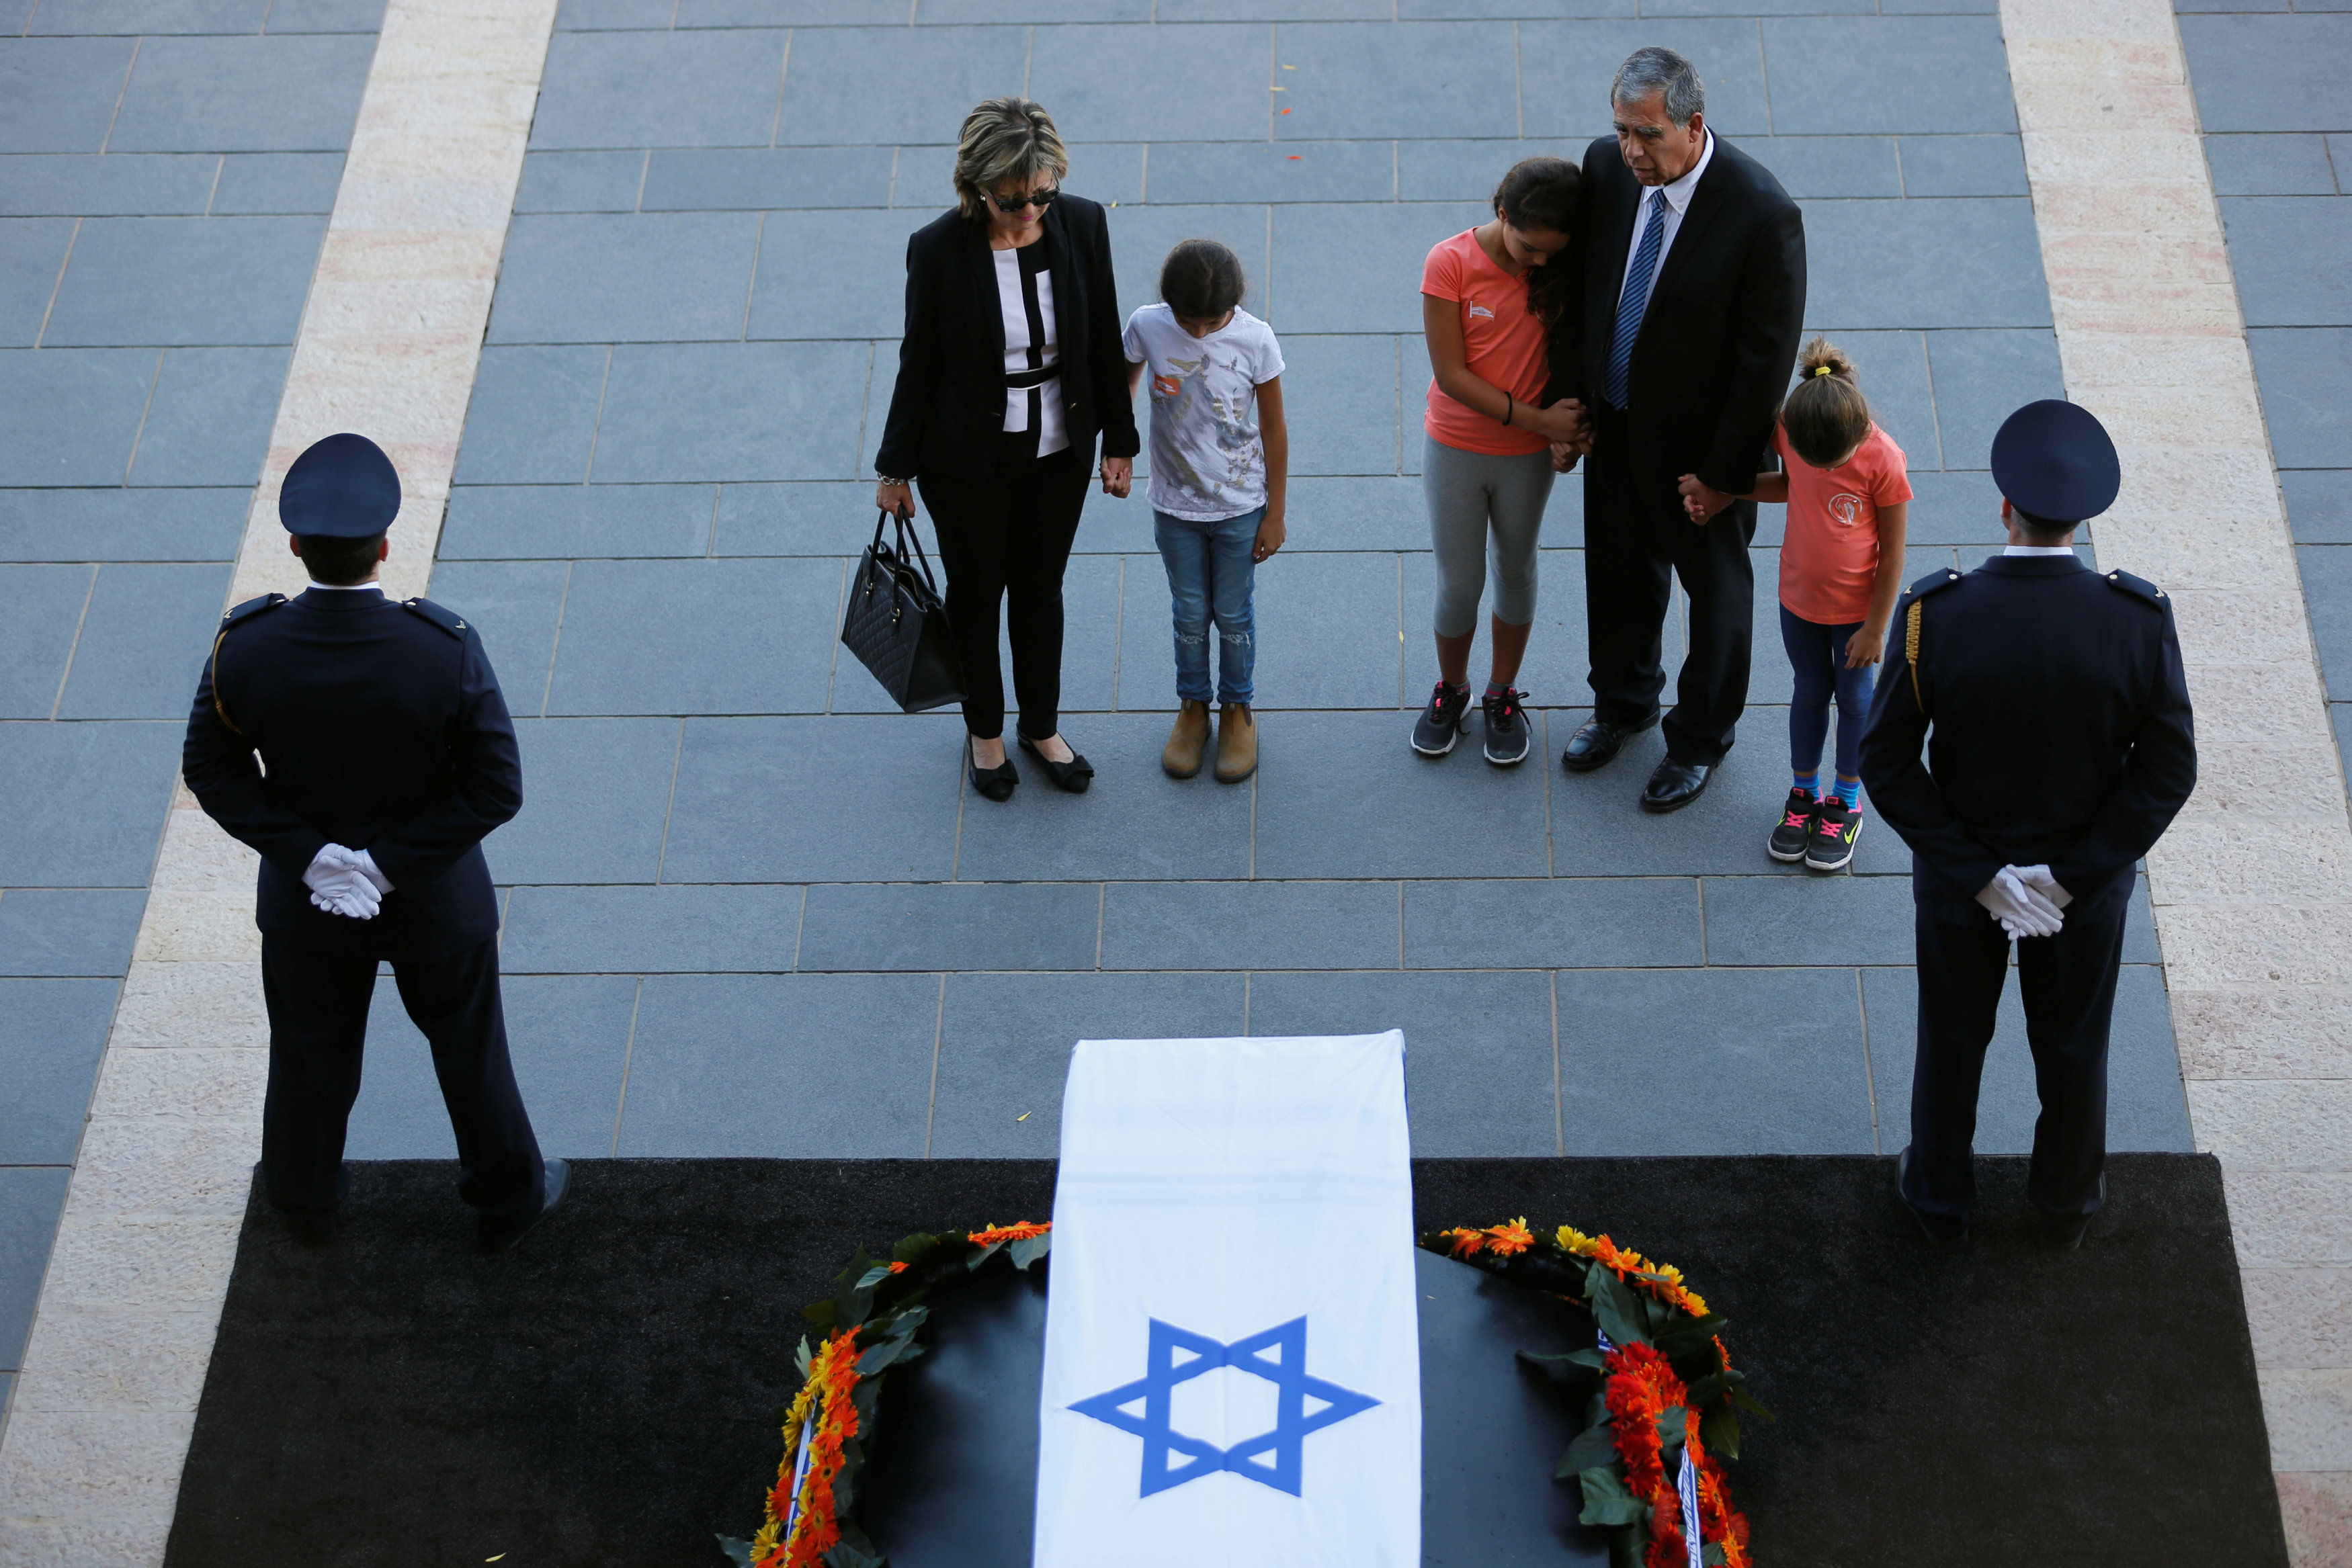 Former Israeli member of parliament Micky Levy in front of the flag-draped coffin of former Israeli President Shimon Peres, as he lies in state at the Knesset plaza, the Israeli parliament, in Jerusalem